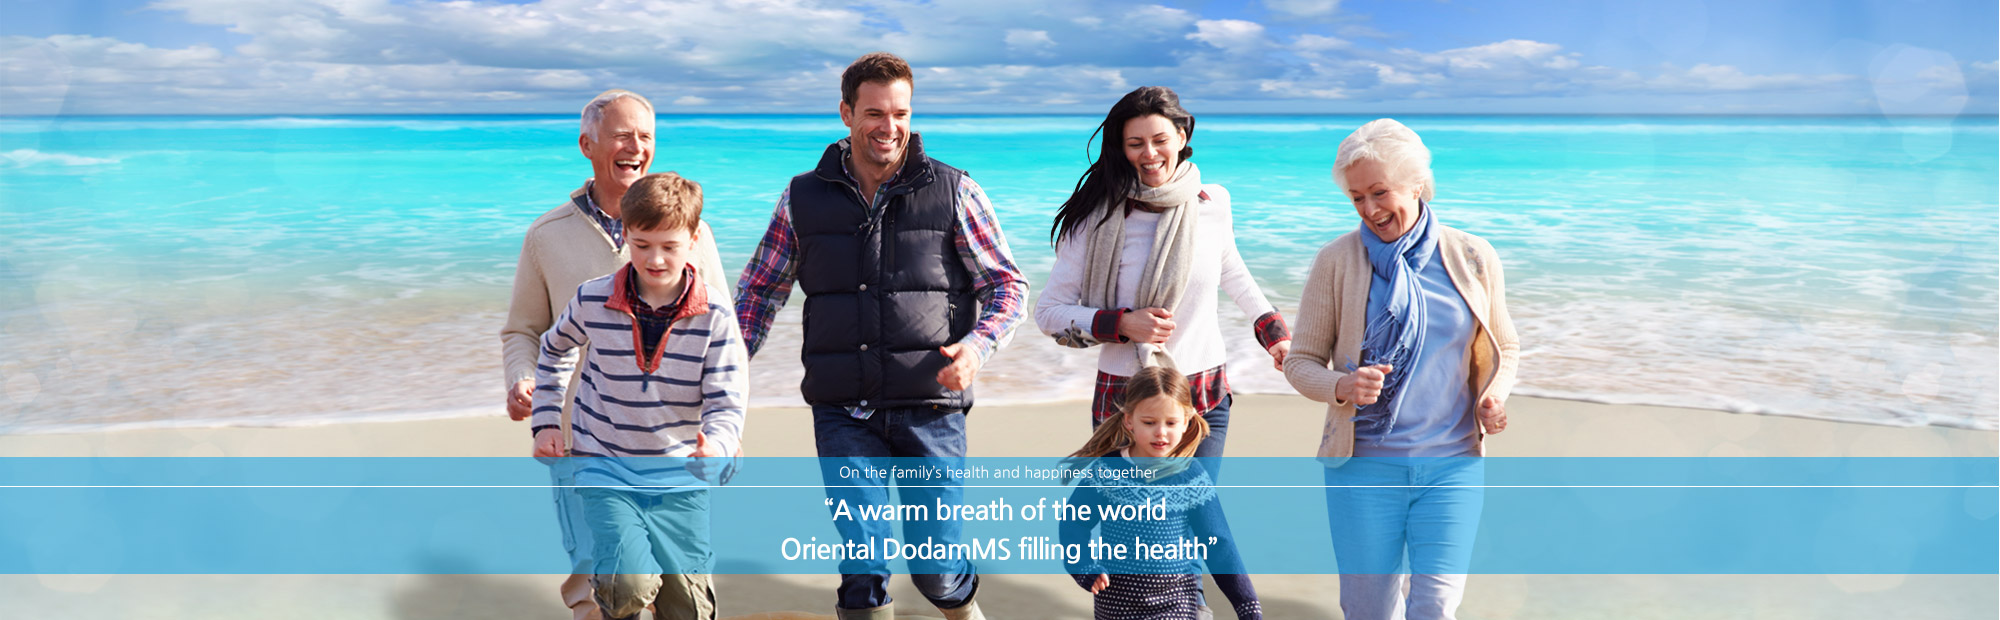 A warm aura oriental medicine filling the health of people around the world